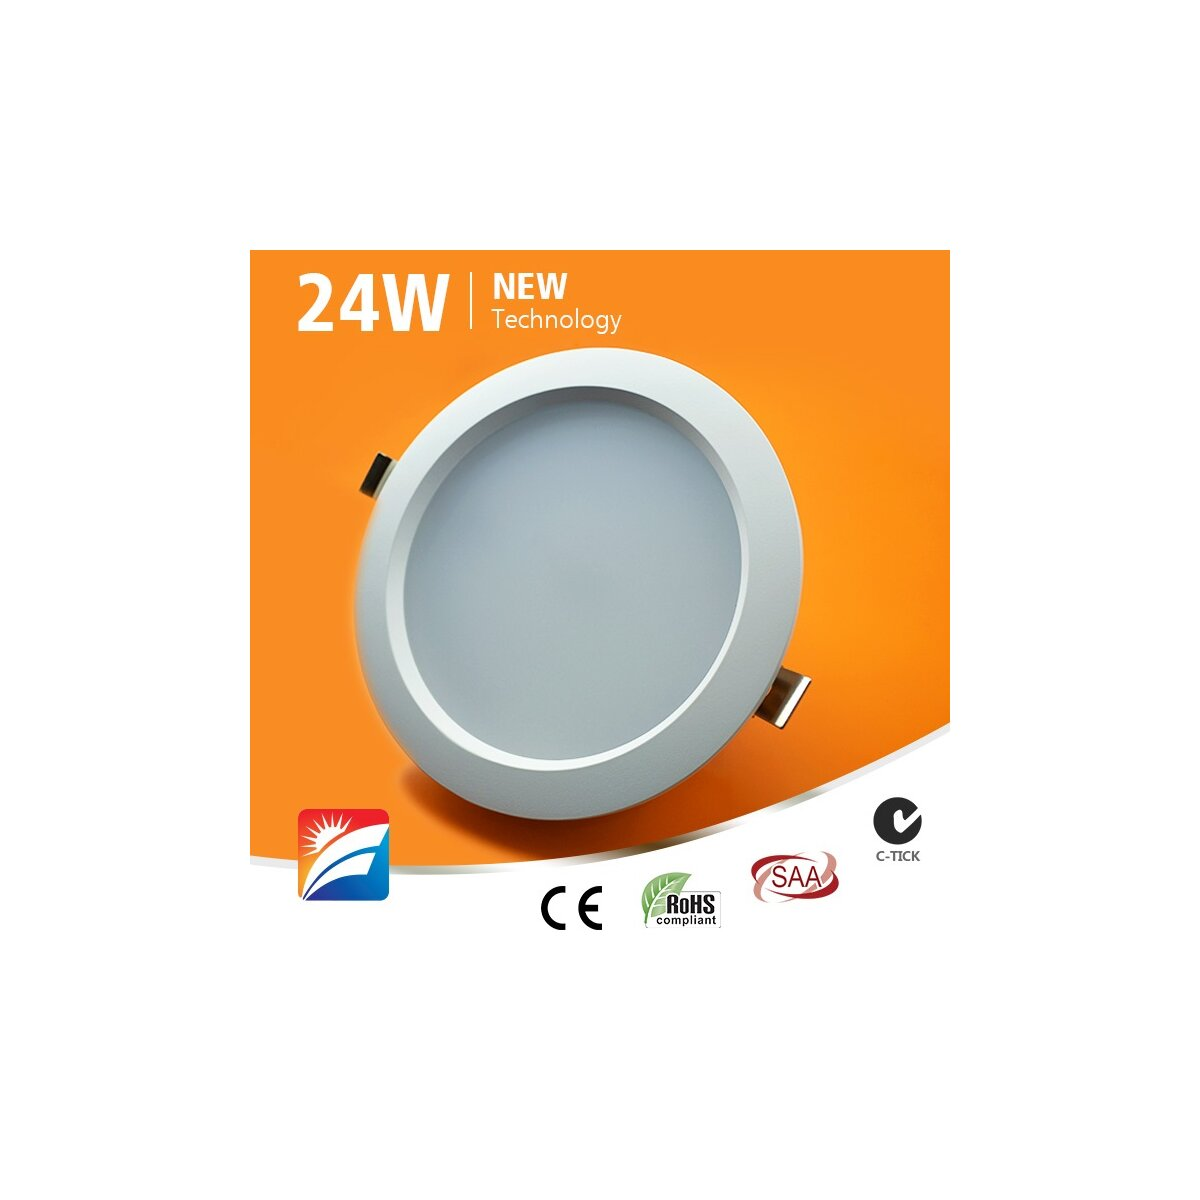 Led Röhre Dimmbar Led-downlight, 24w, 230ac, 120°, Dm 230mm, Cut-out 200mm